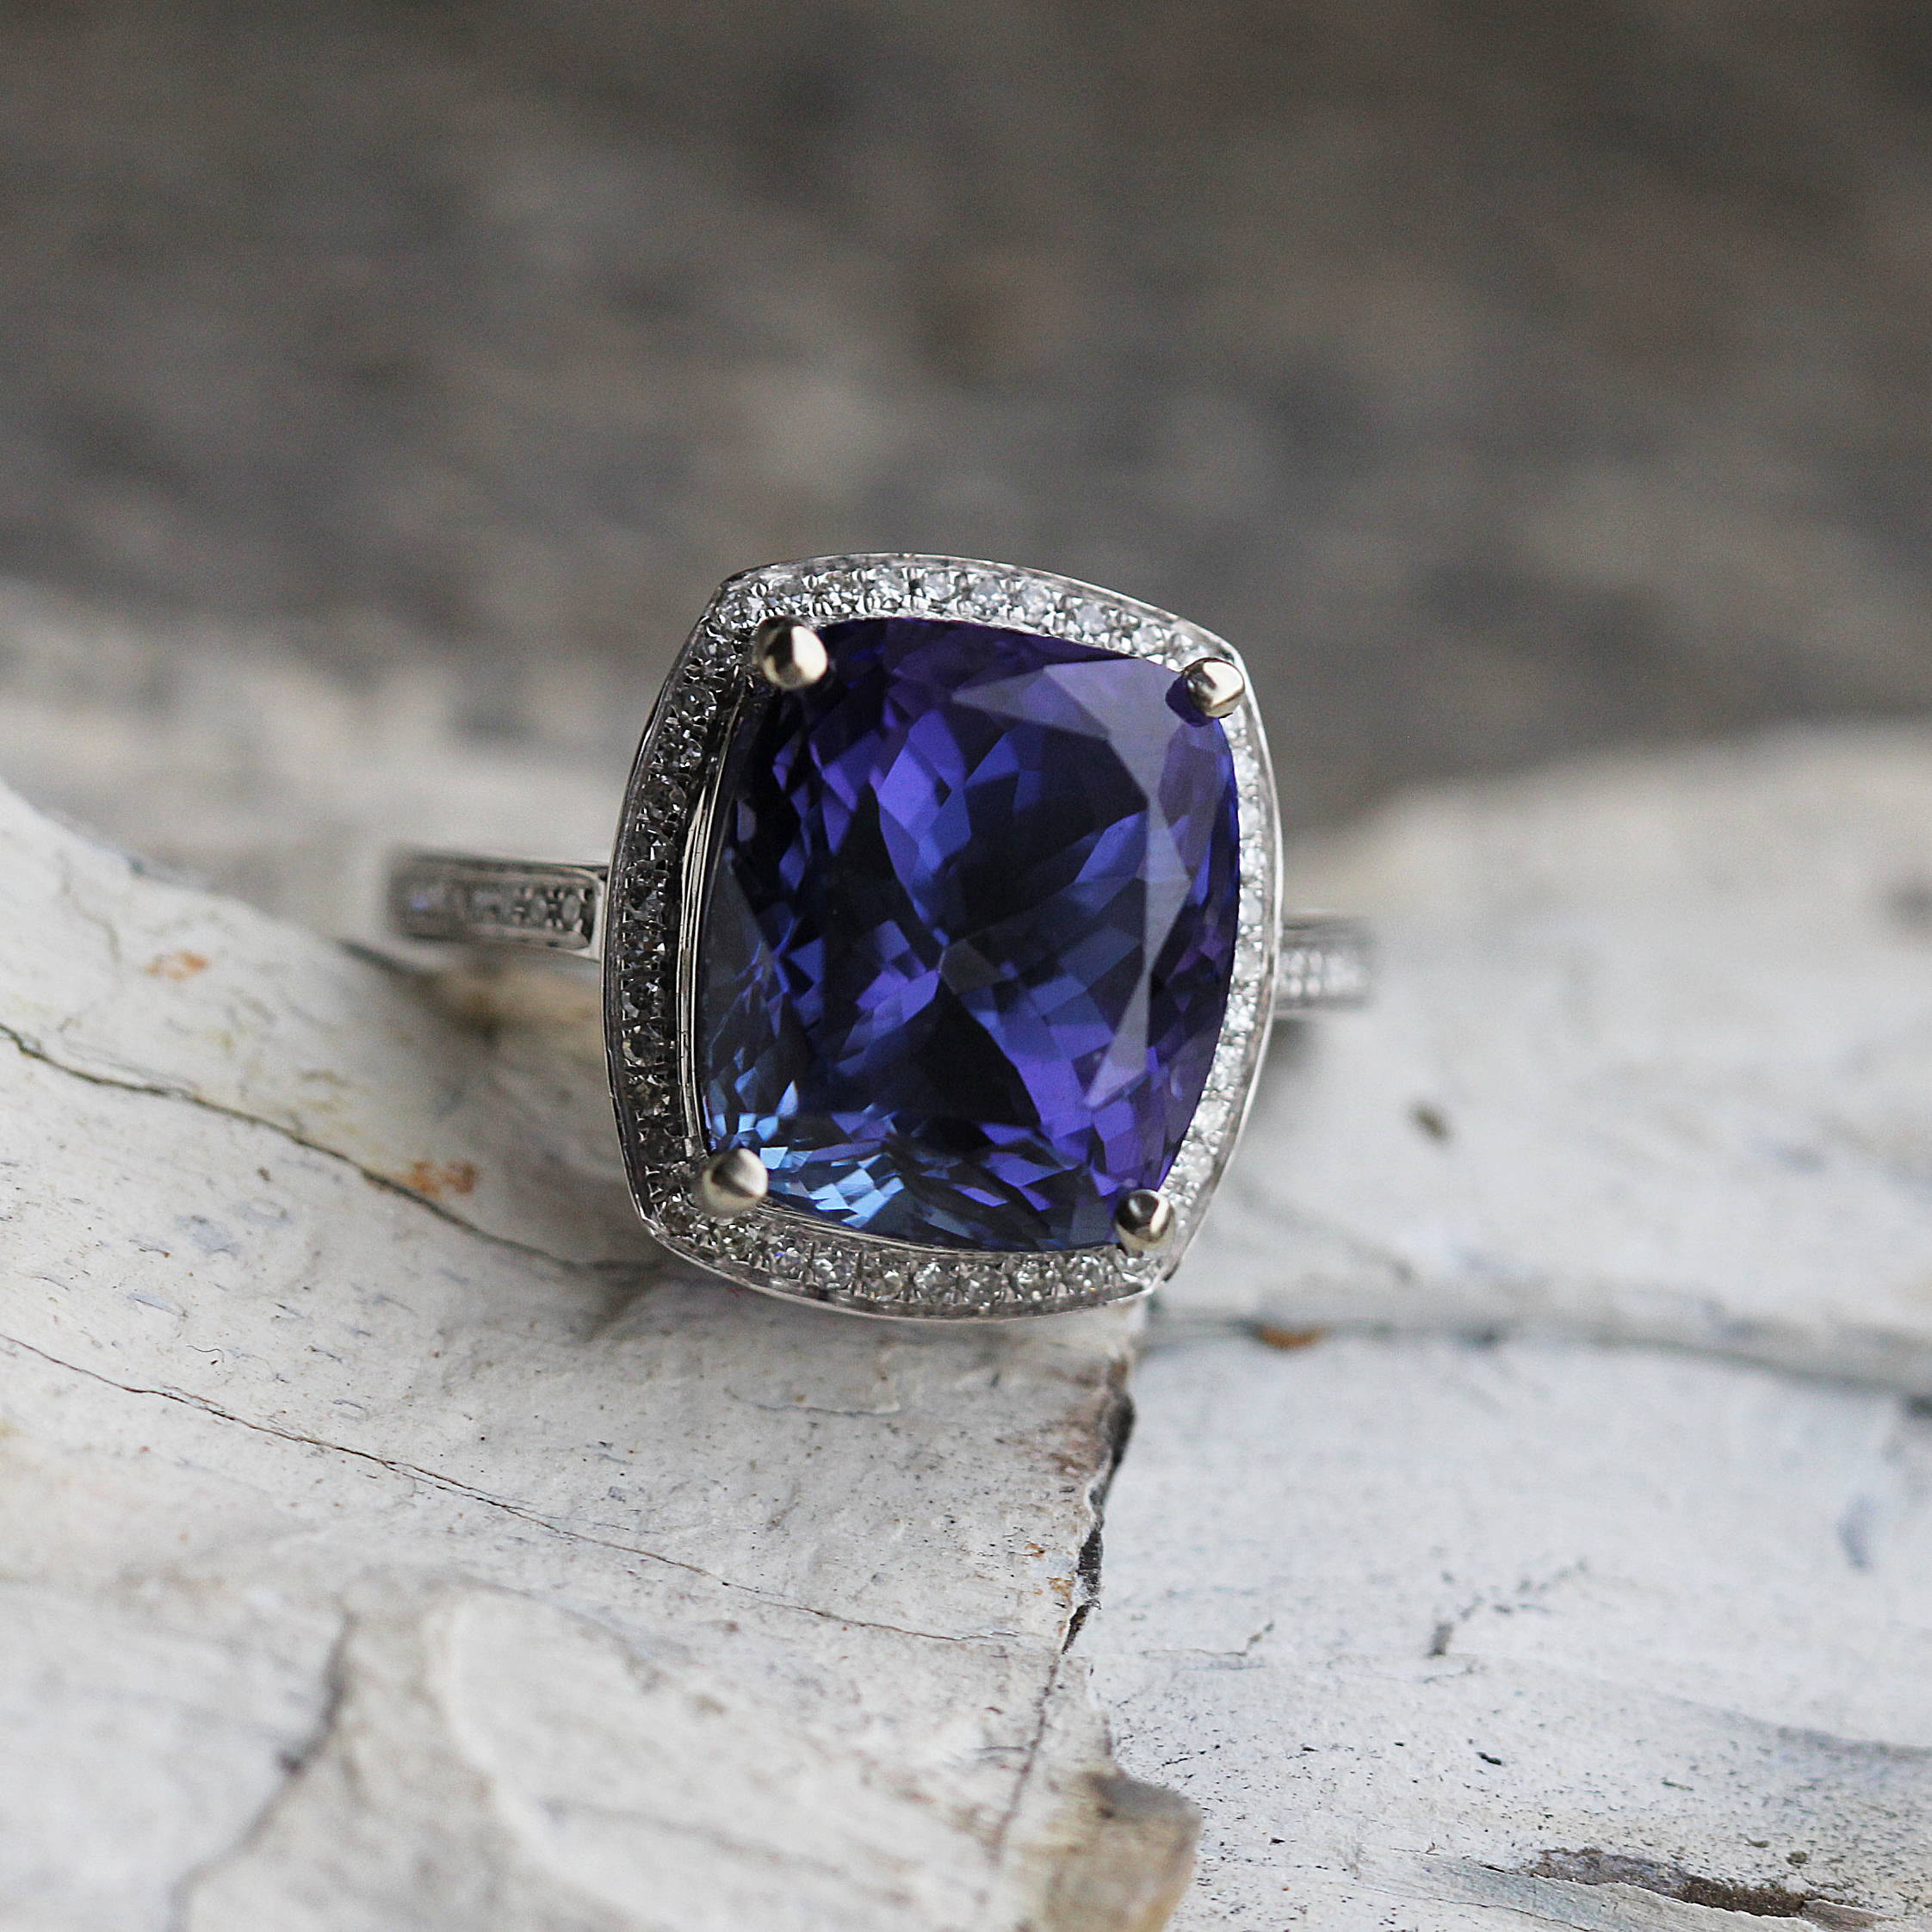 RARE VIOLET TANZANITE ENGAGEMENT RING WITH DIAMOND ACCENTS, WHITE GOLD